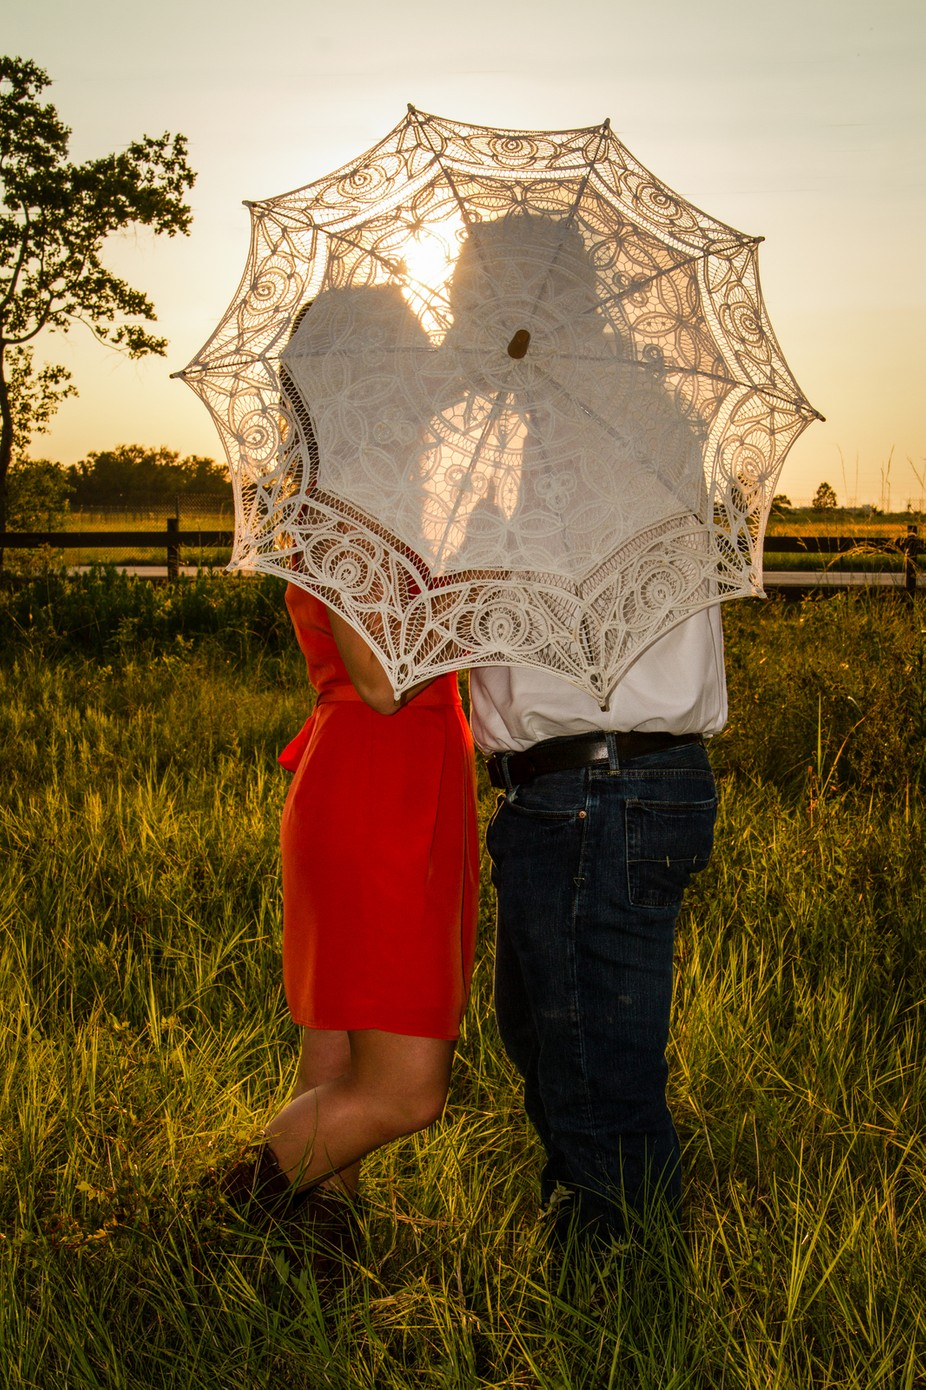 Kissed by the Sun by sarahking - Love Photo Contest 2019